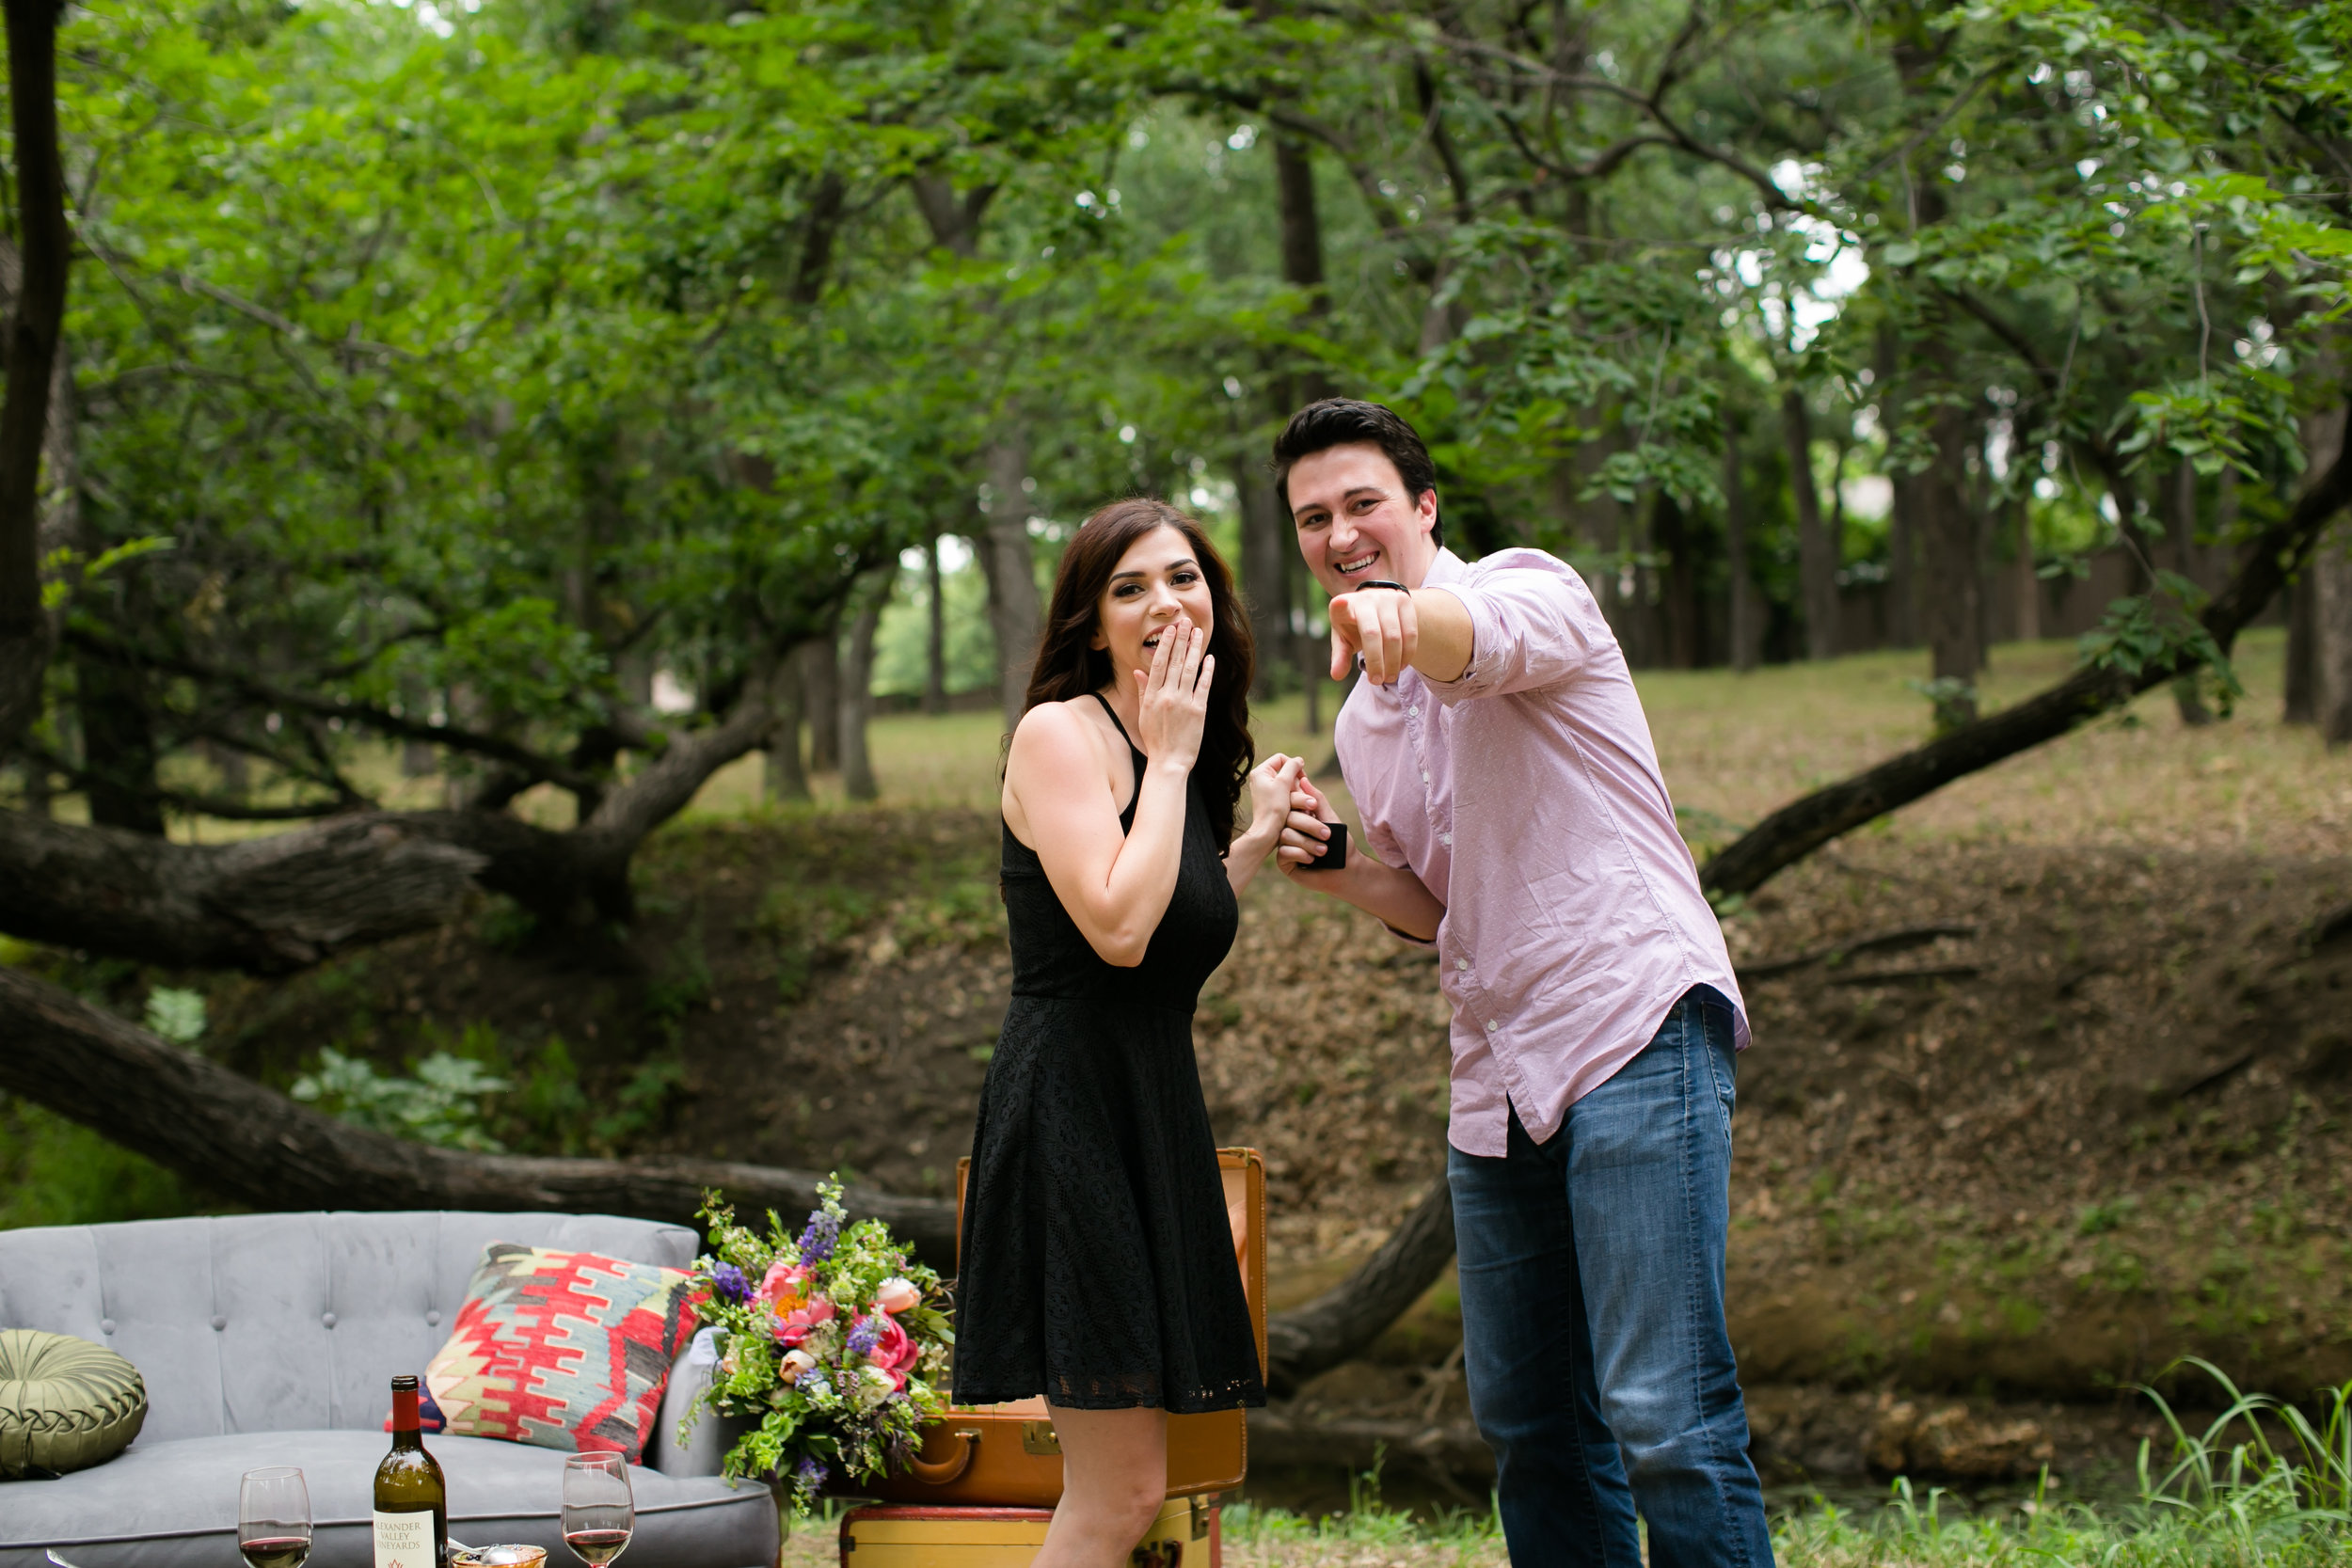 Engagement Proposal Rent My Dust vintage rentals  (291).jpg